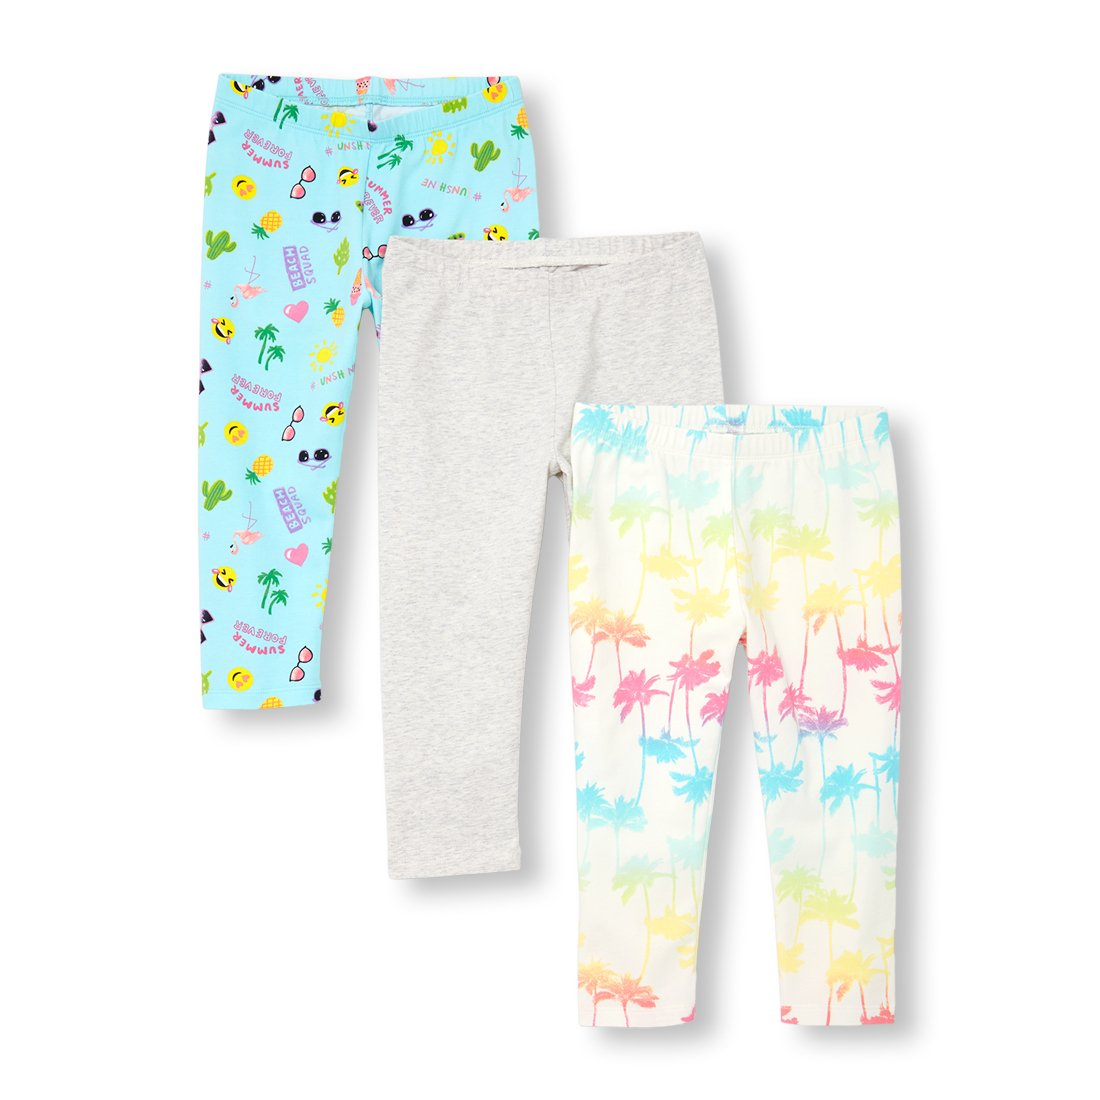 The Children's Place Big Girls' Fashion Leggings, Simplywht 00909, M (7/8) by The Children's Place